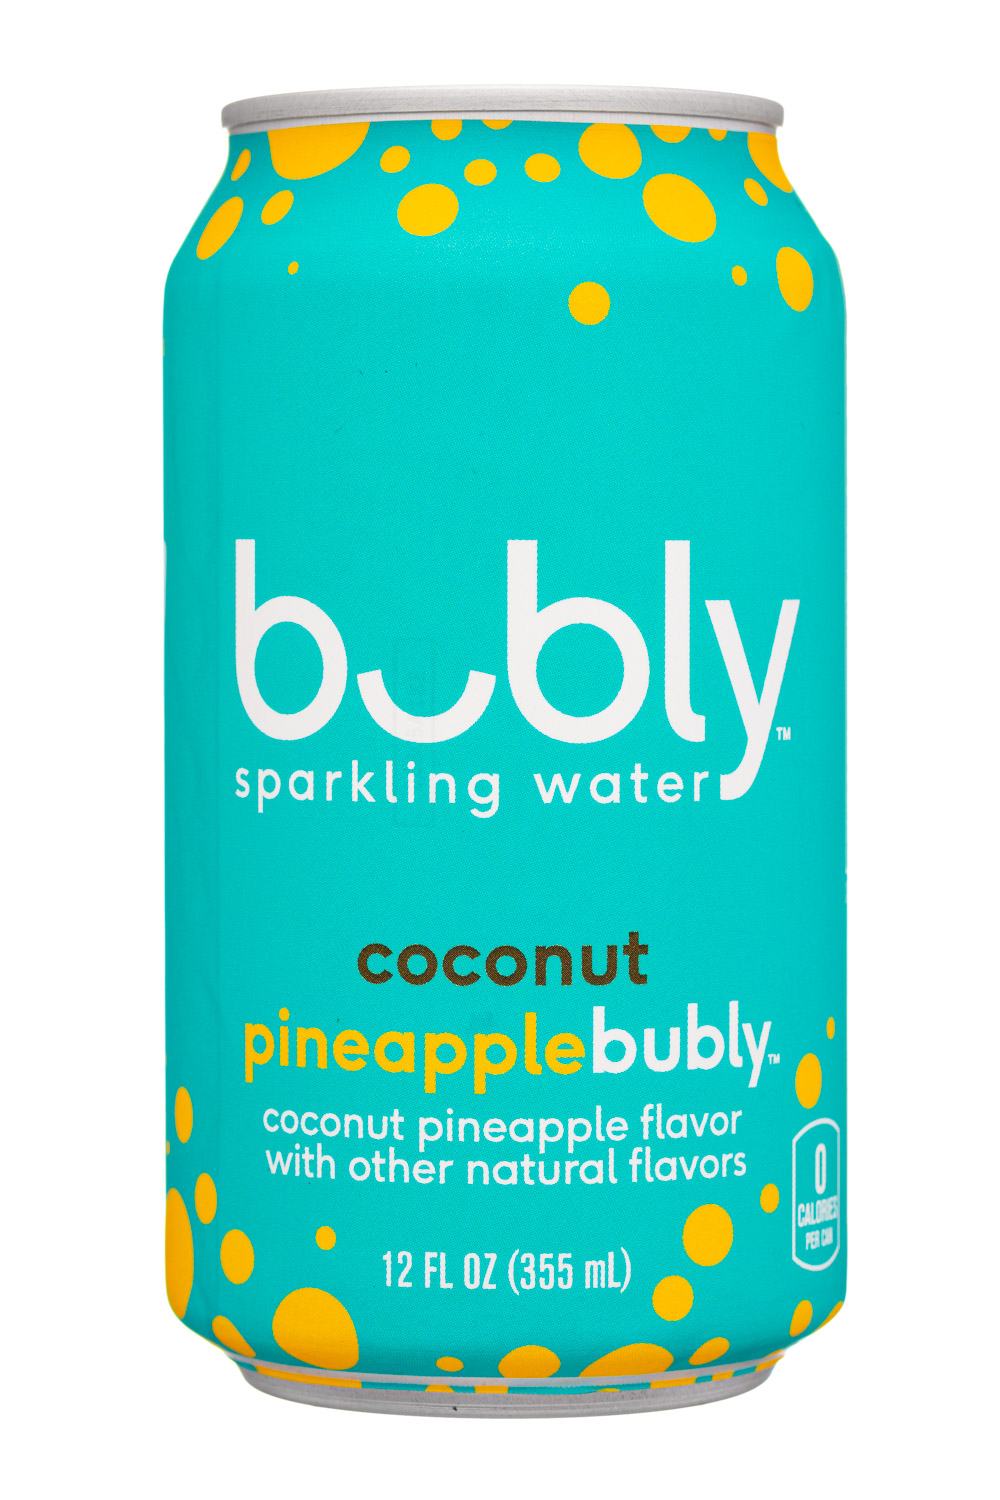 Coconut Pineapple Bubly